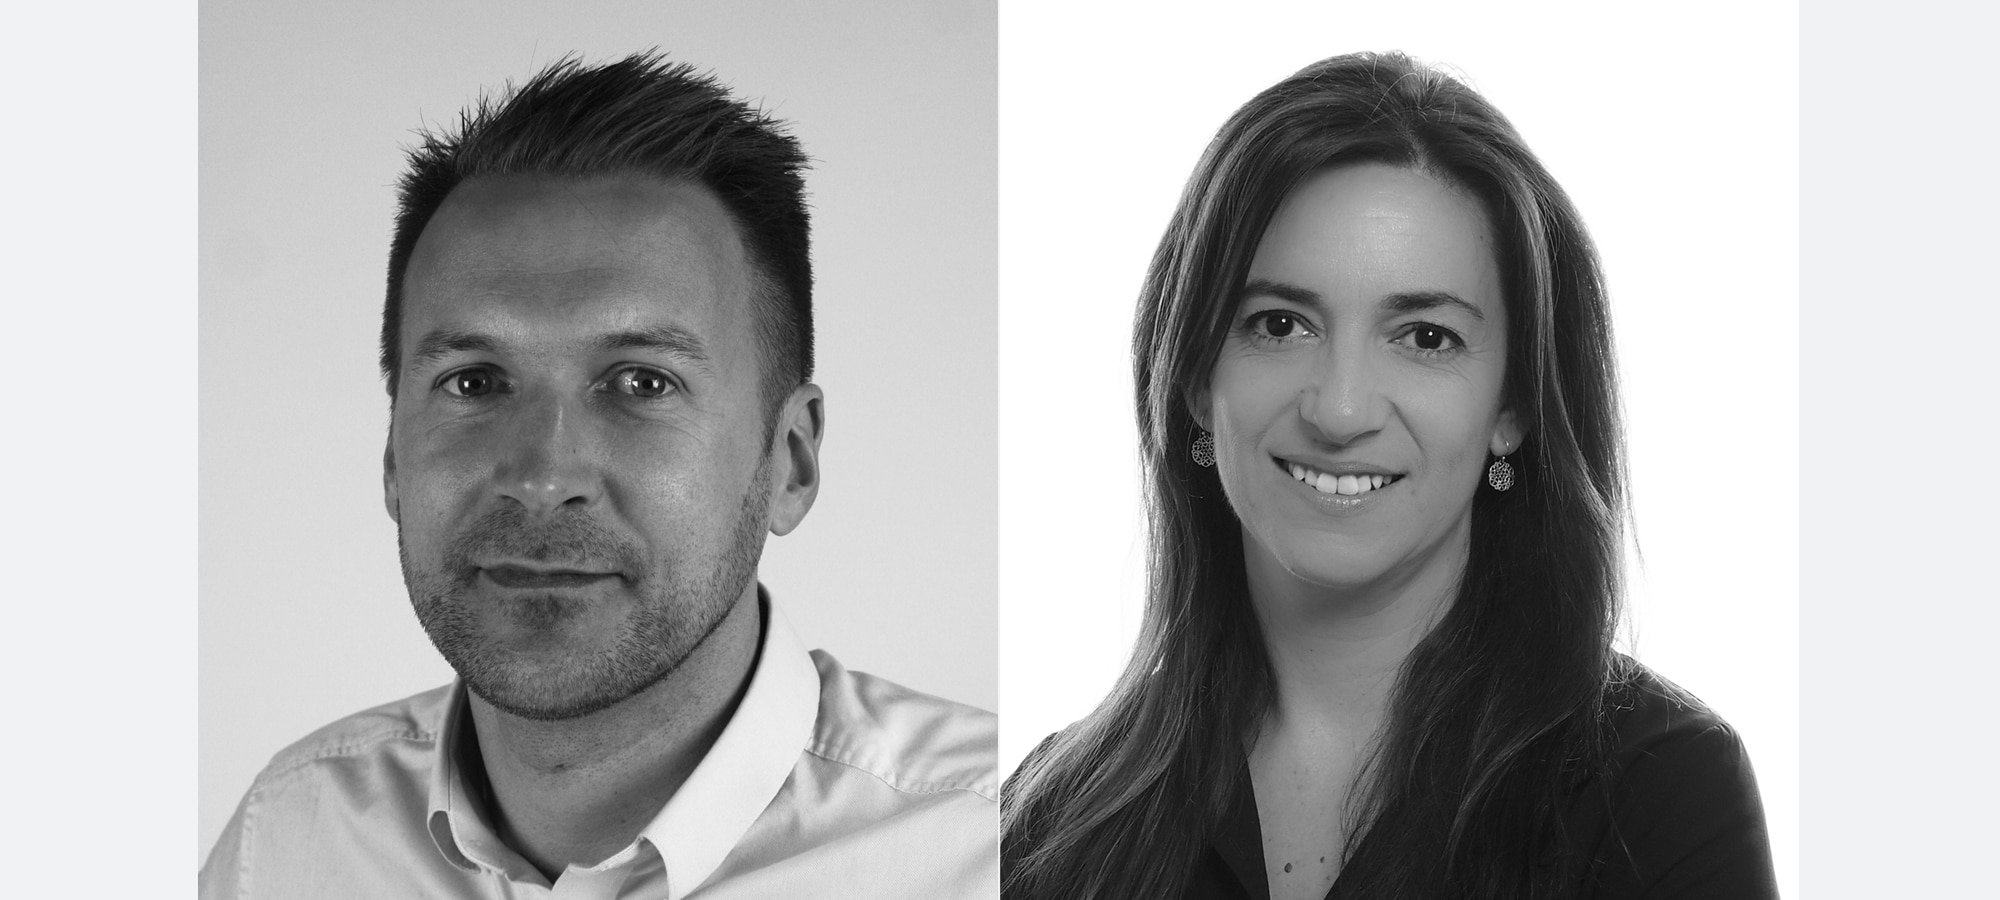 Laurence Hobbs, Business Development Manager UK and Marta Del Moral, who will head up ES Broadcast Hire's Madrid office as Business Development Manager for Spain